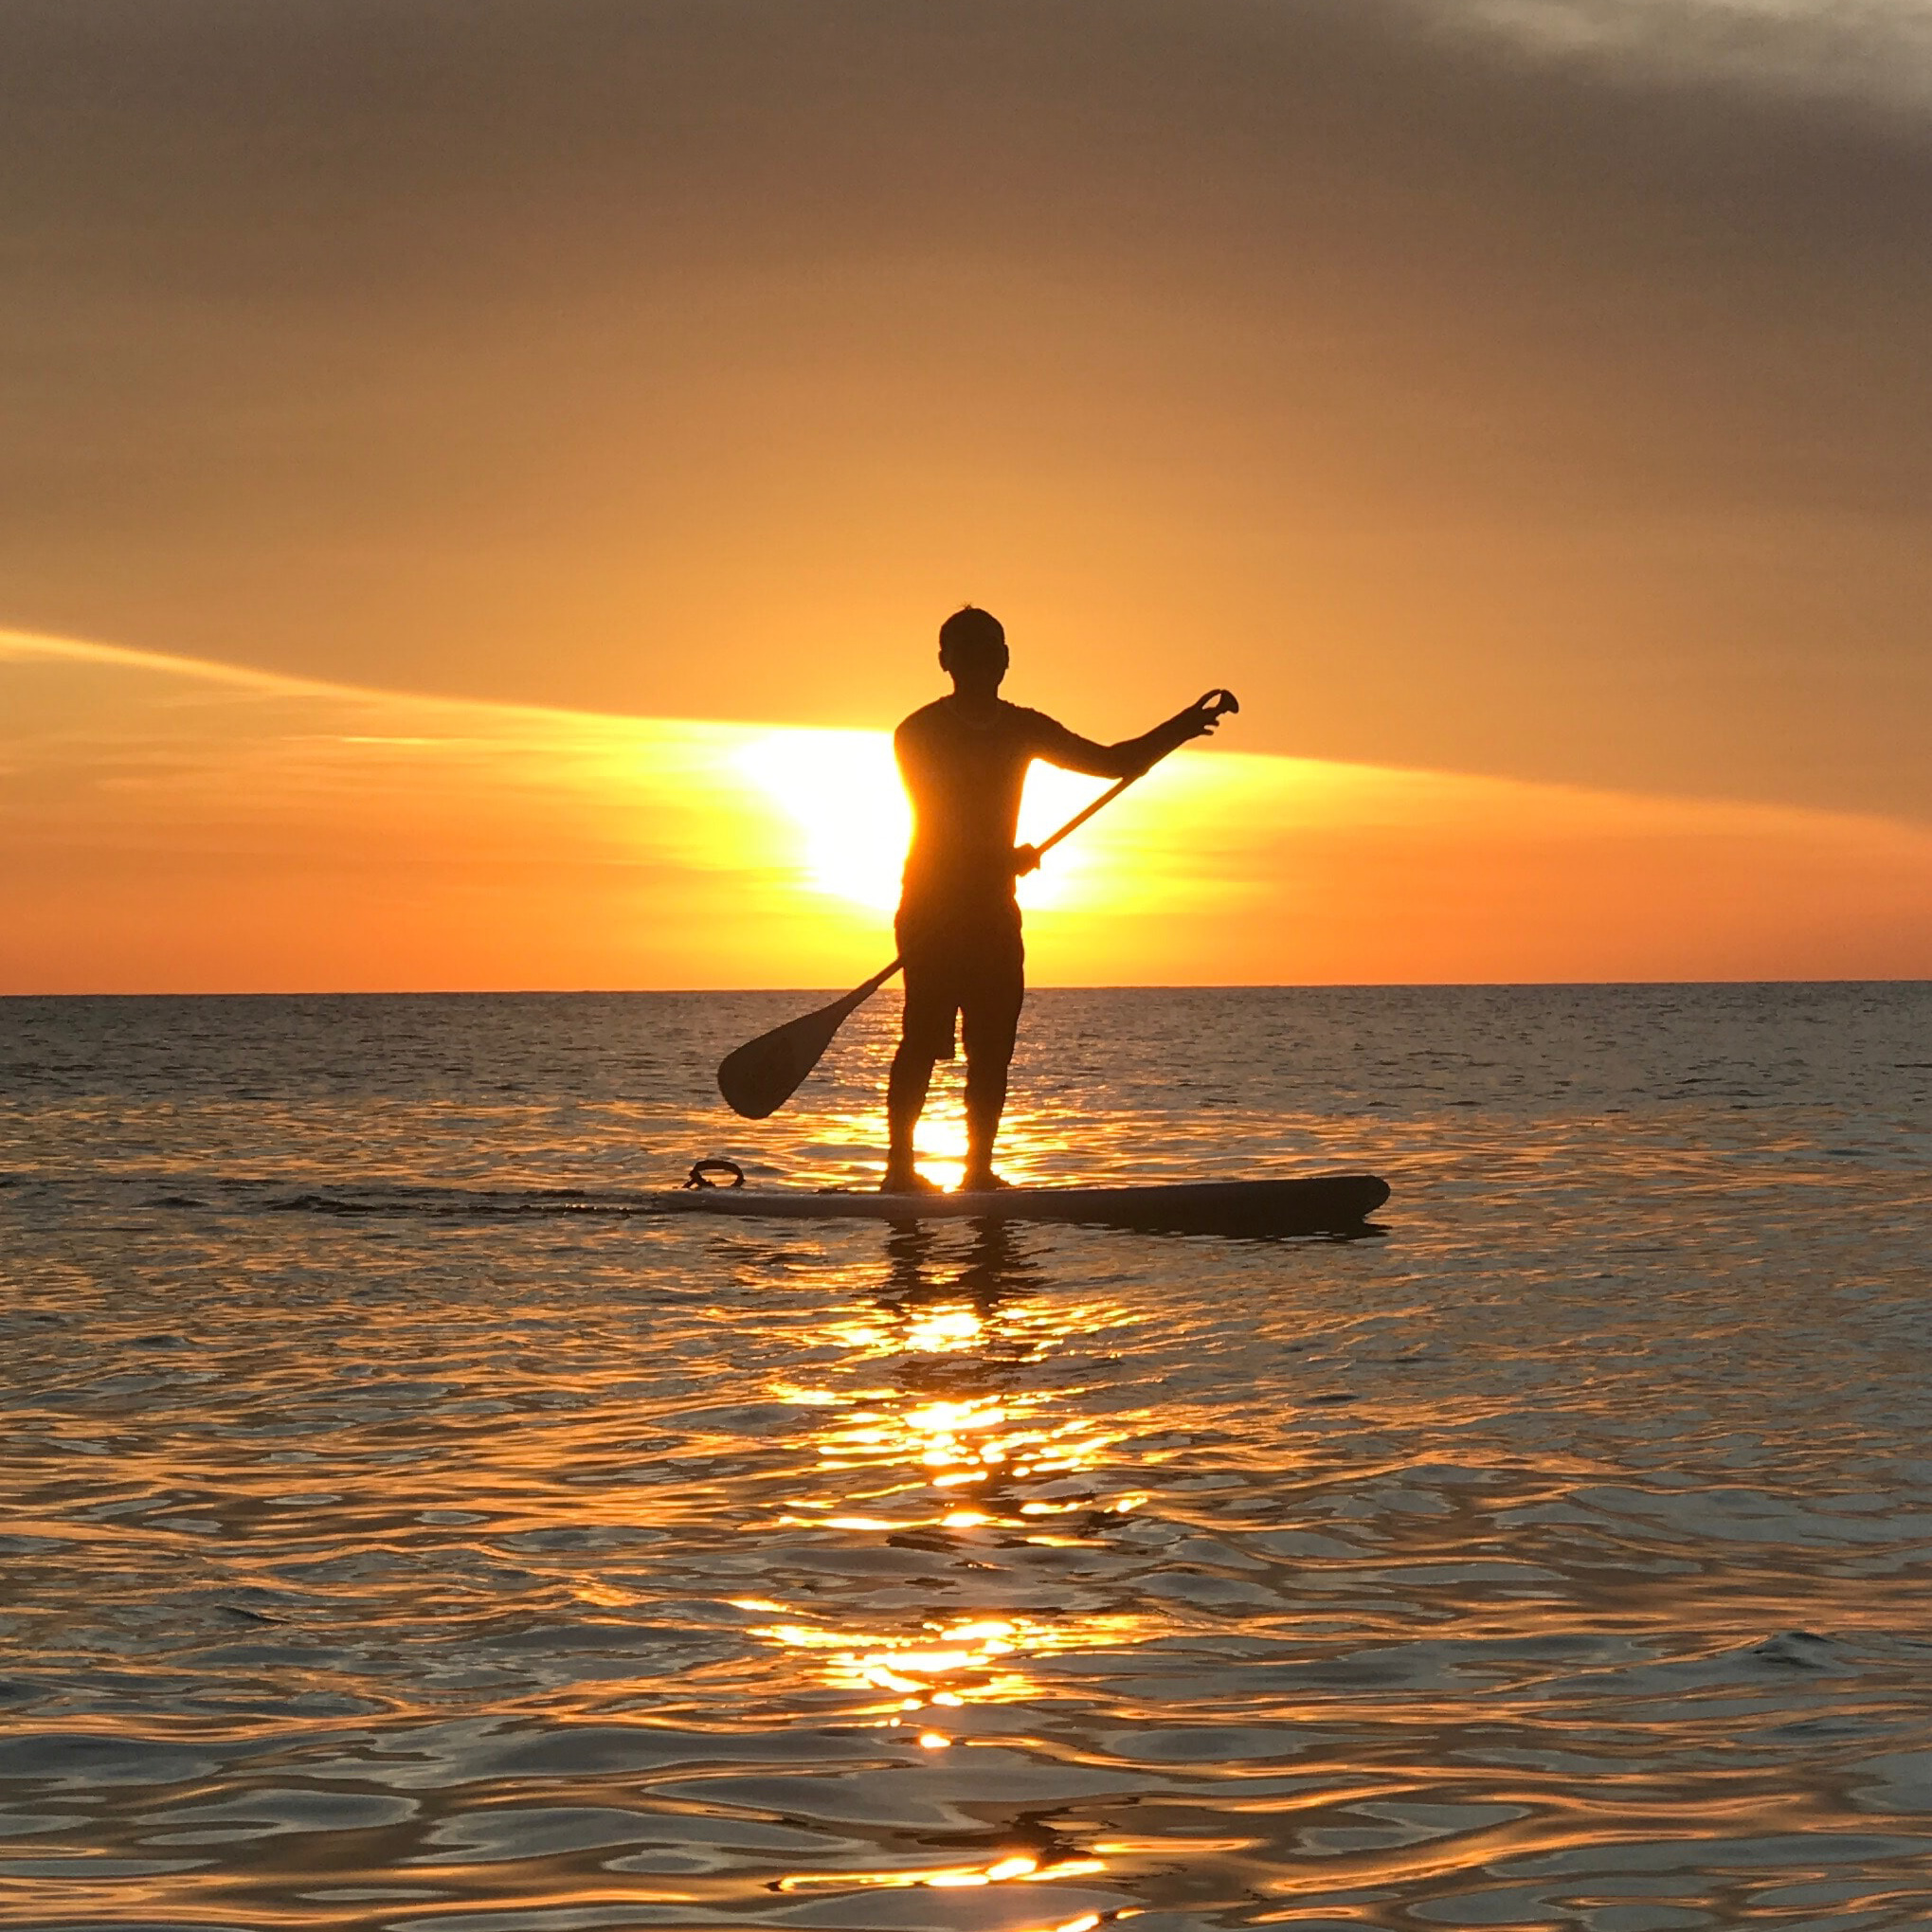 person on paddle board